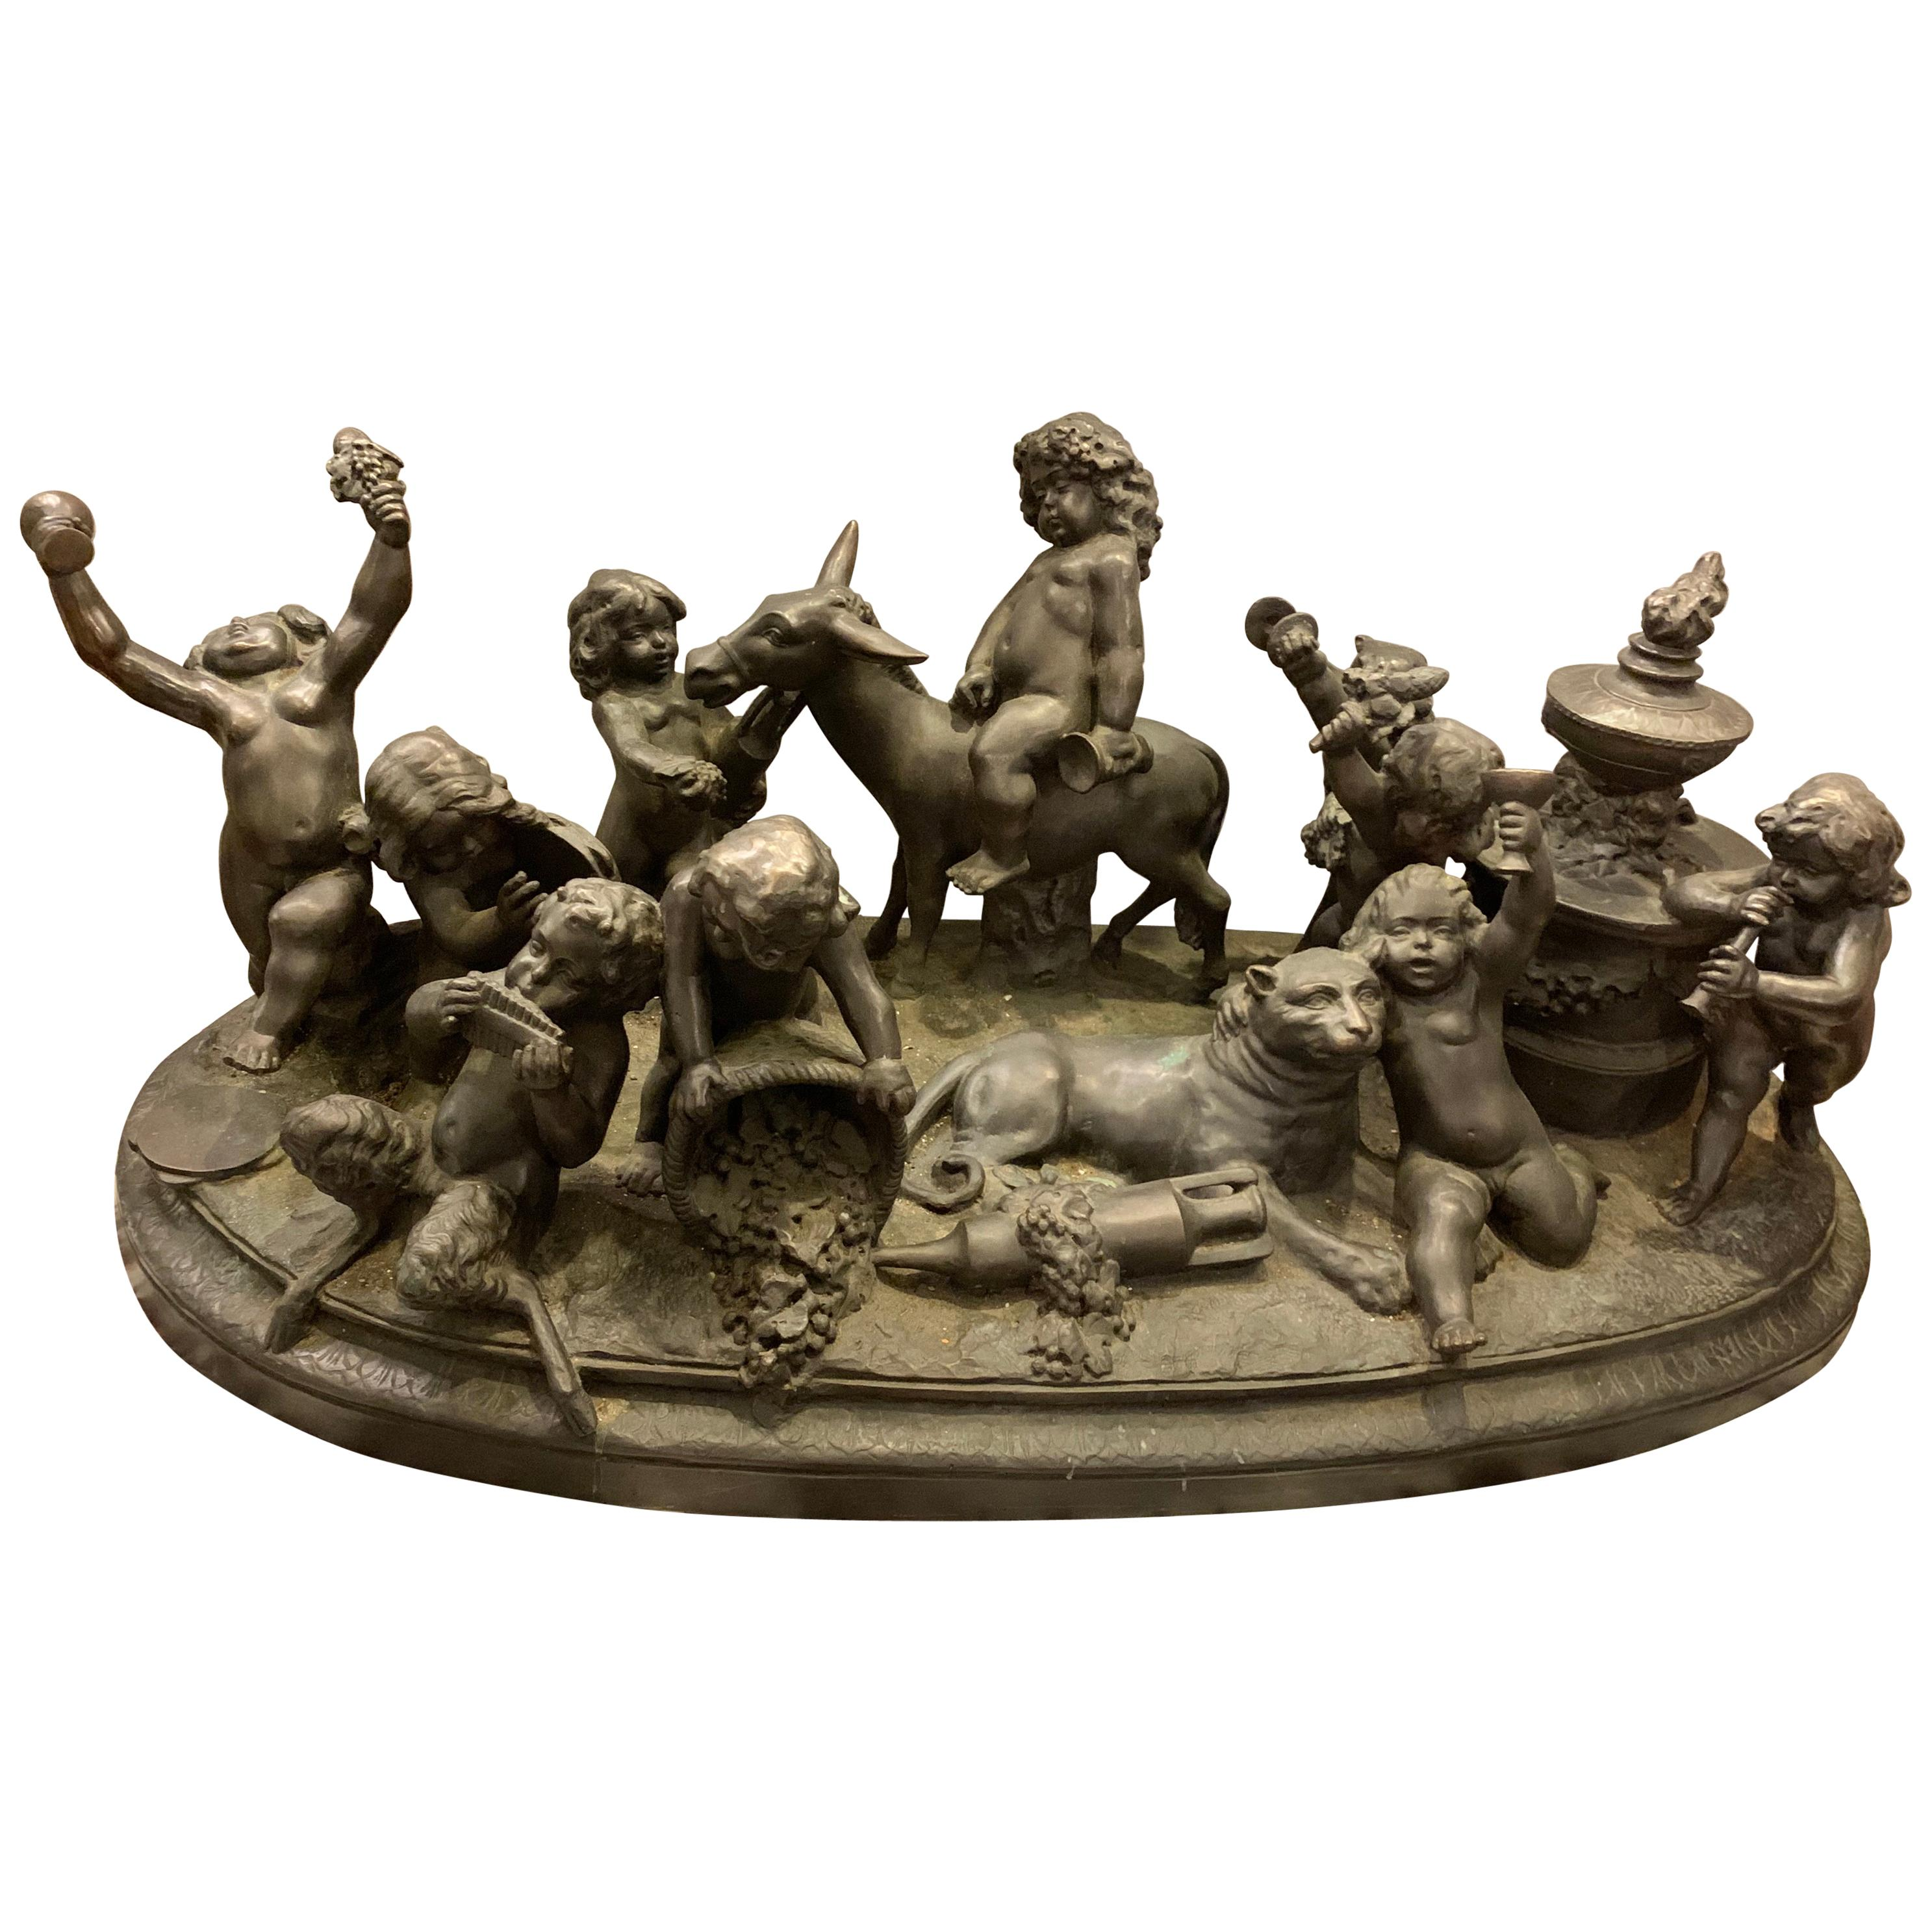 Antique Bronze Cherub Group Sculpture or Centerpiece of Drunken Playing Cherubs